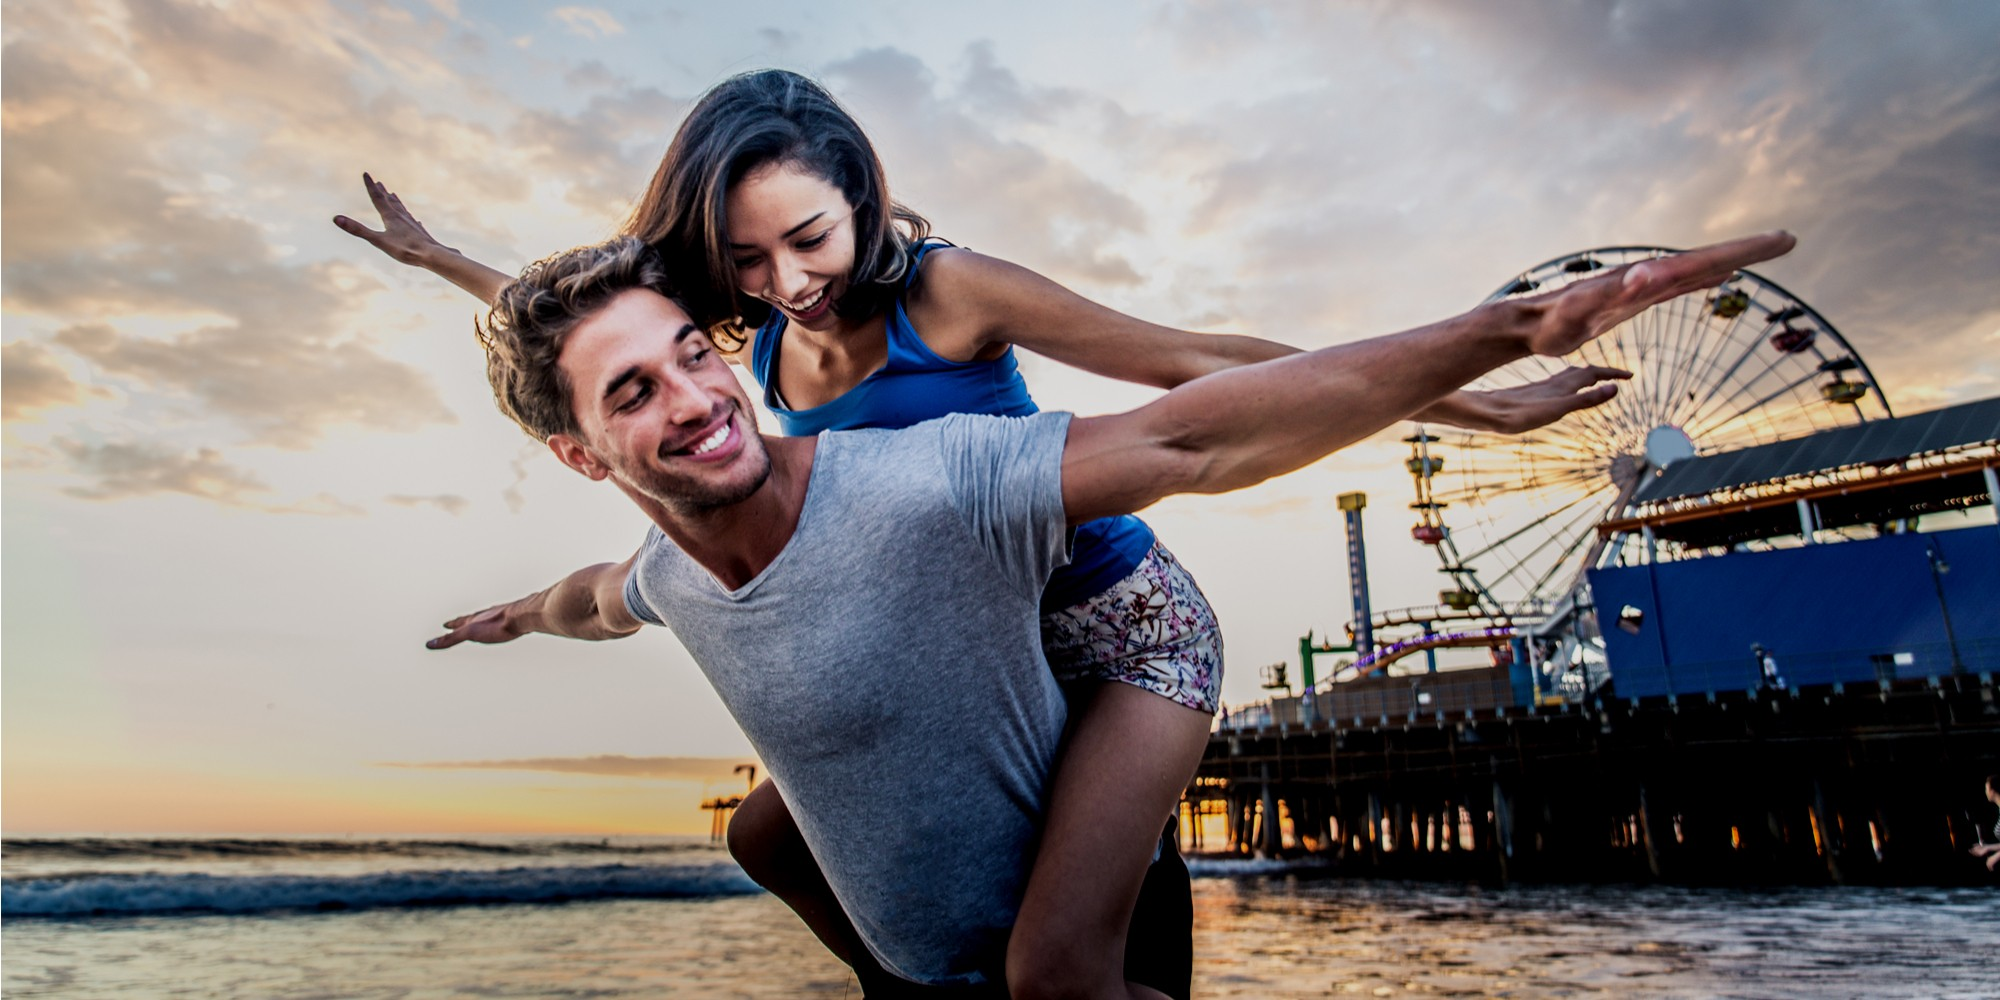 6 Exciting Things To Do on A First Date In Los Angeles